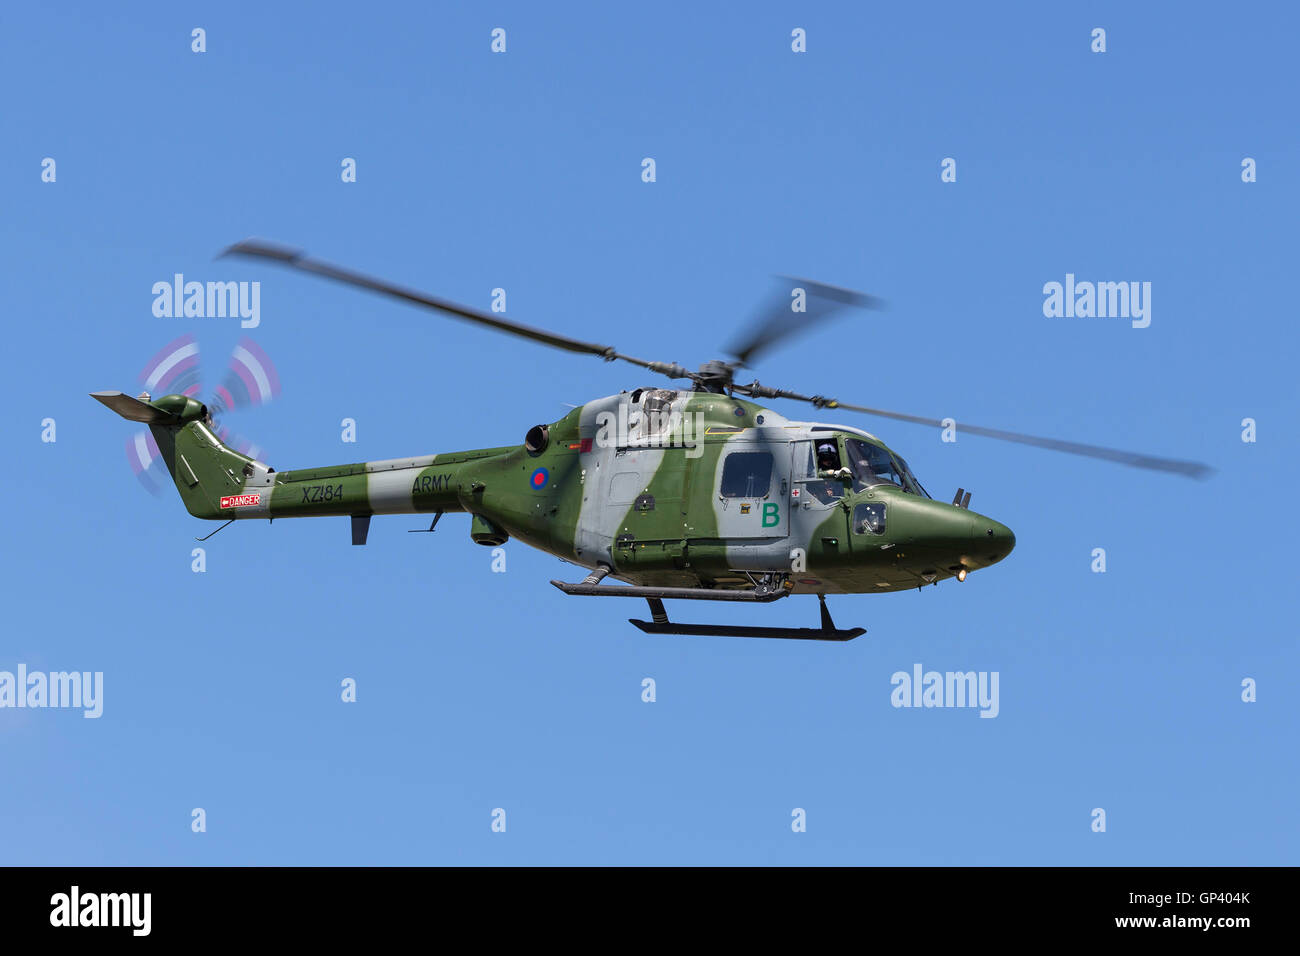 British Army Air Corps Westland WG-13 Lynx AH7 military helicopter - Stock Image